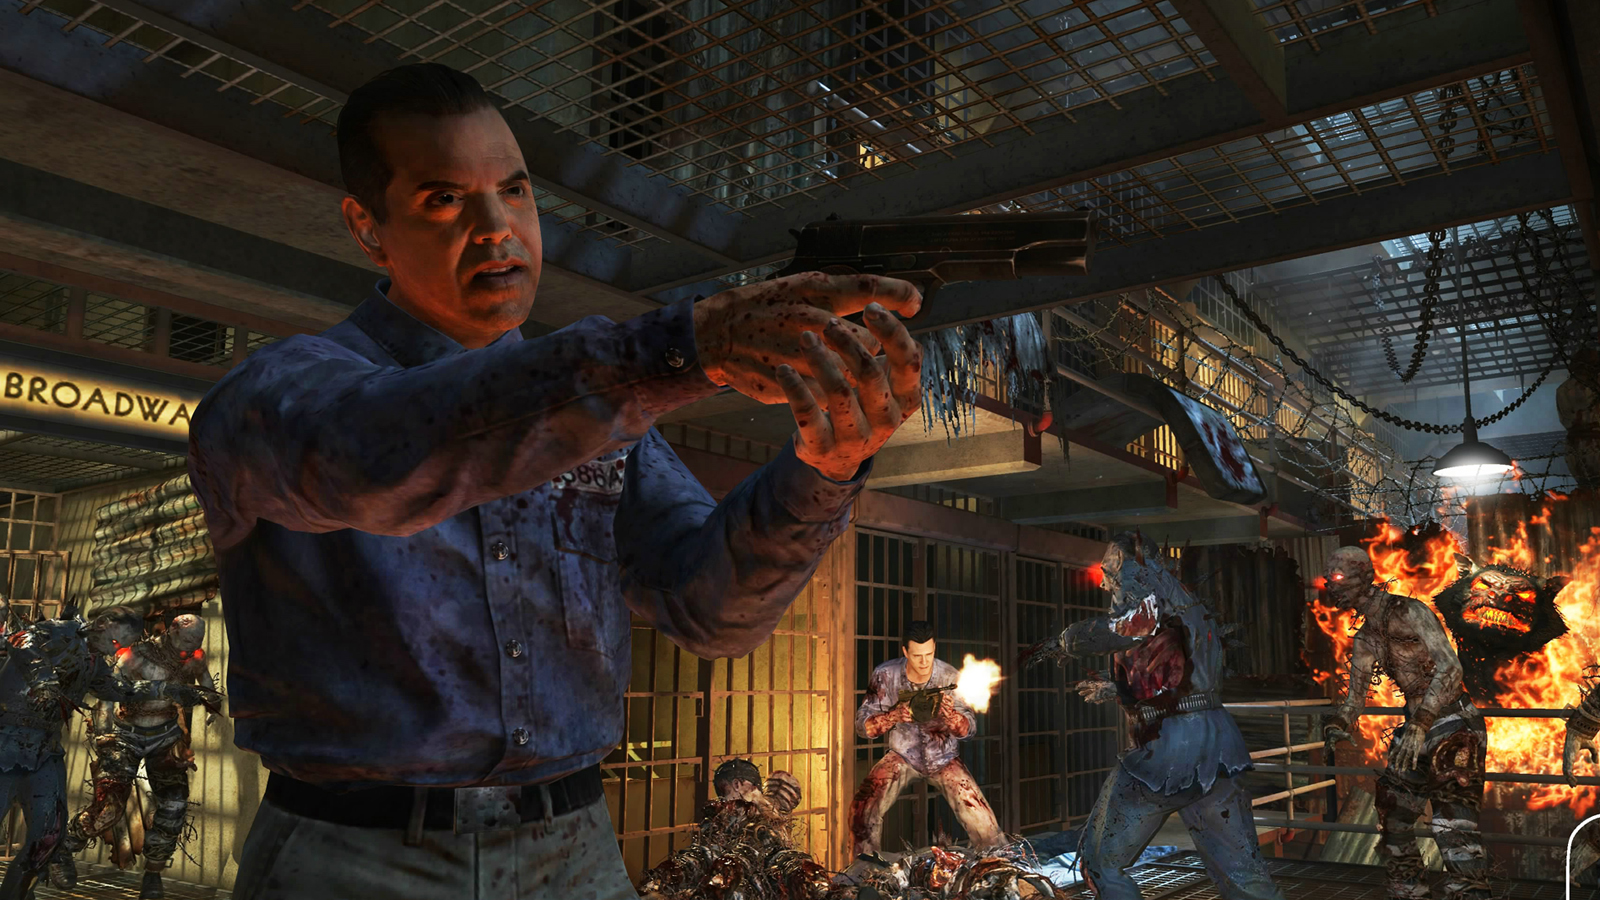 Call of duty black ops ii uprising dlc review the - Mob of the dead pictures ...